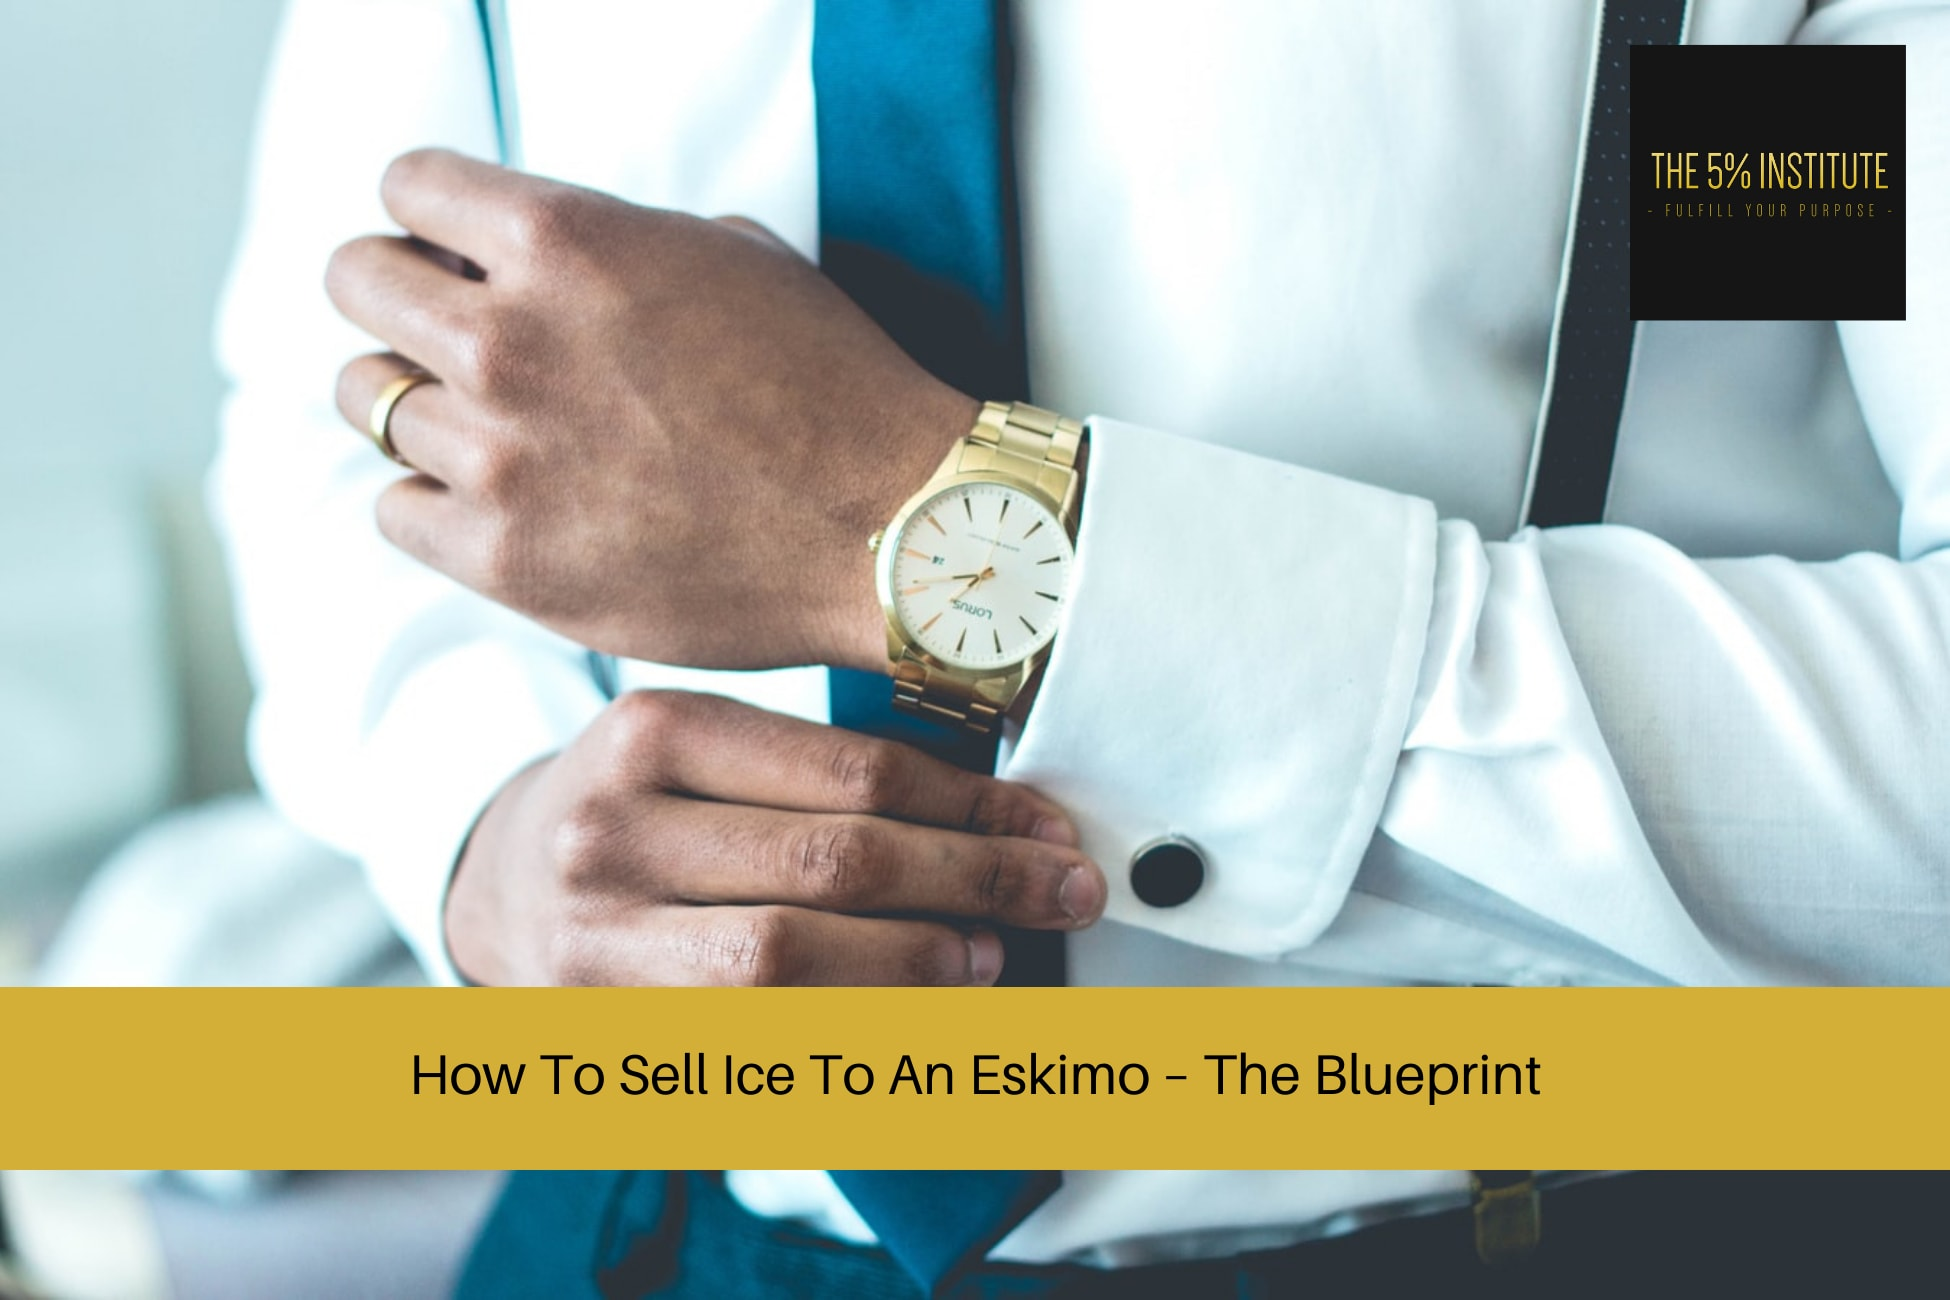 how to sell ice to an eskimo meaning